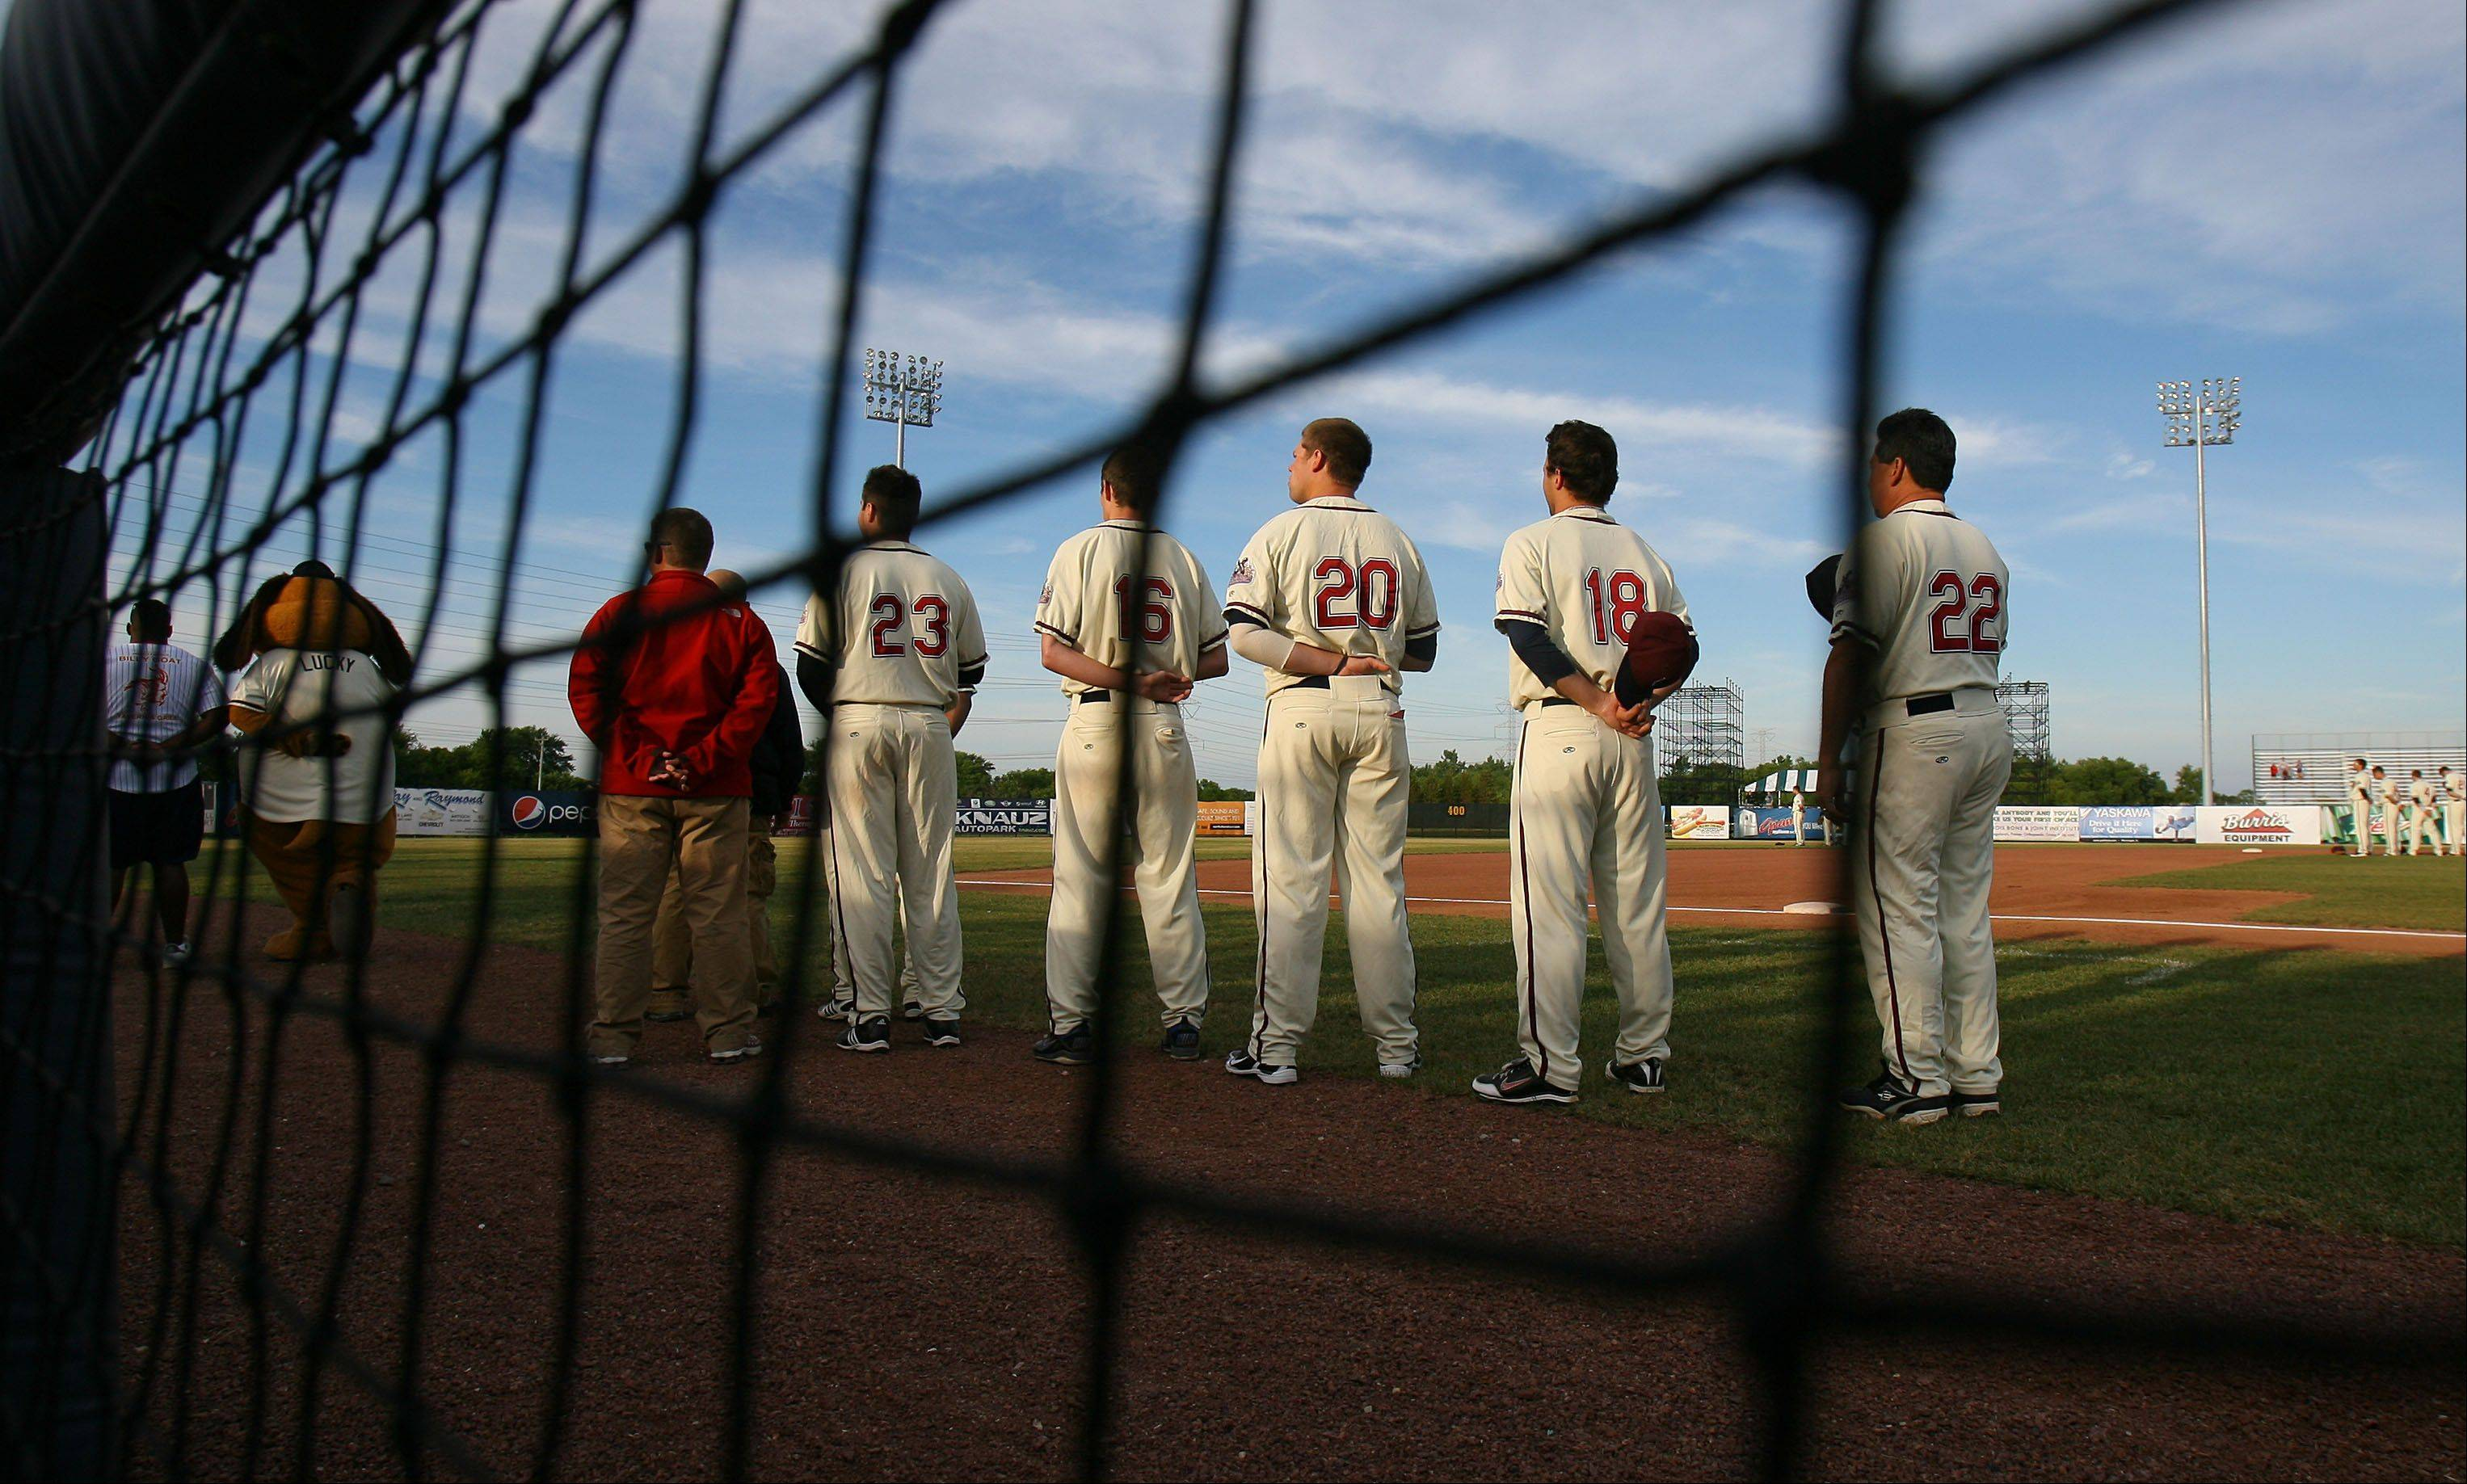 Fielders players line up during the national anthem during their game against the Chico Outlaws Wednesday night in Zion.